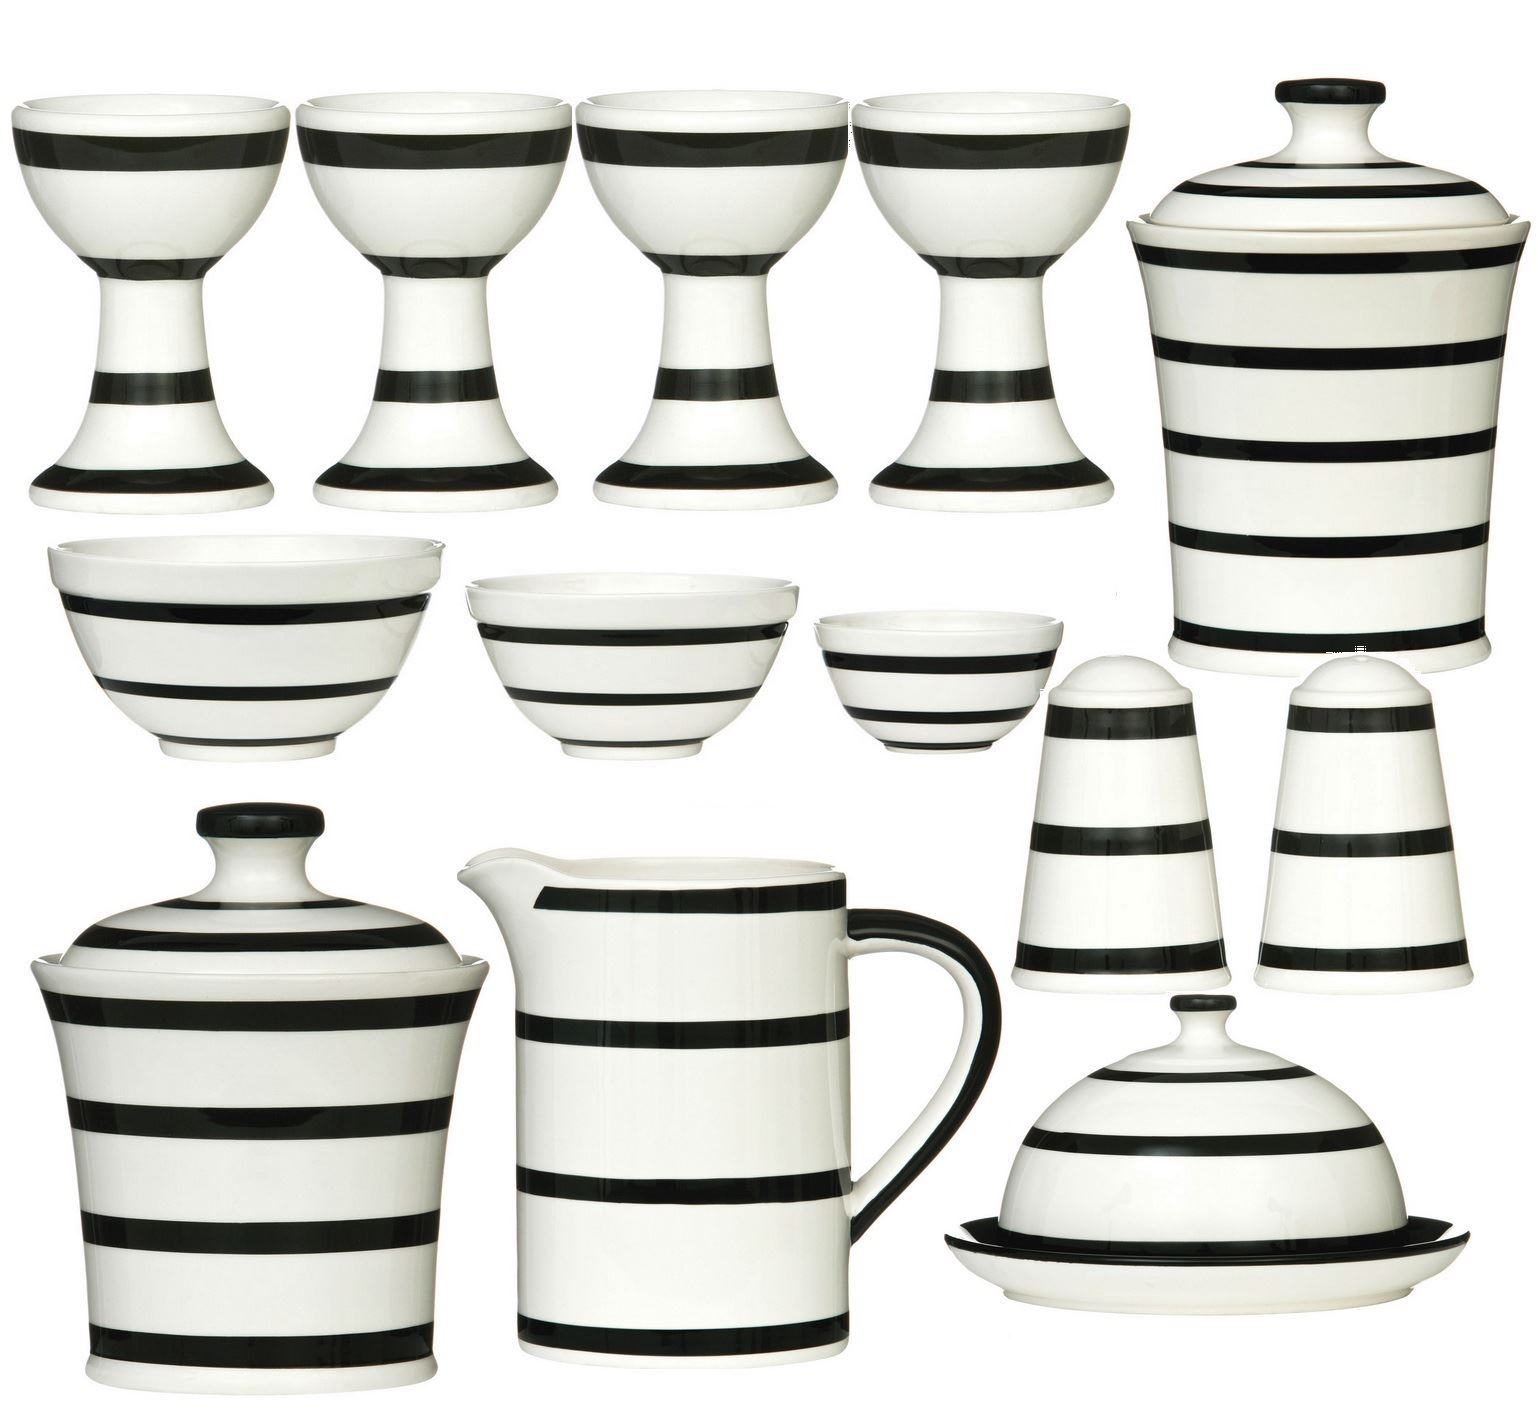 Black-Stripe-Ceramic-Dining-Kitchen-Accessories-Canister-Storage-Jar-Your-Home thumbnail 9